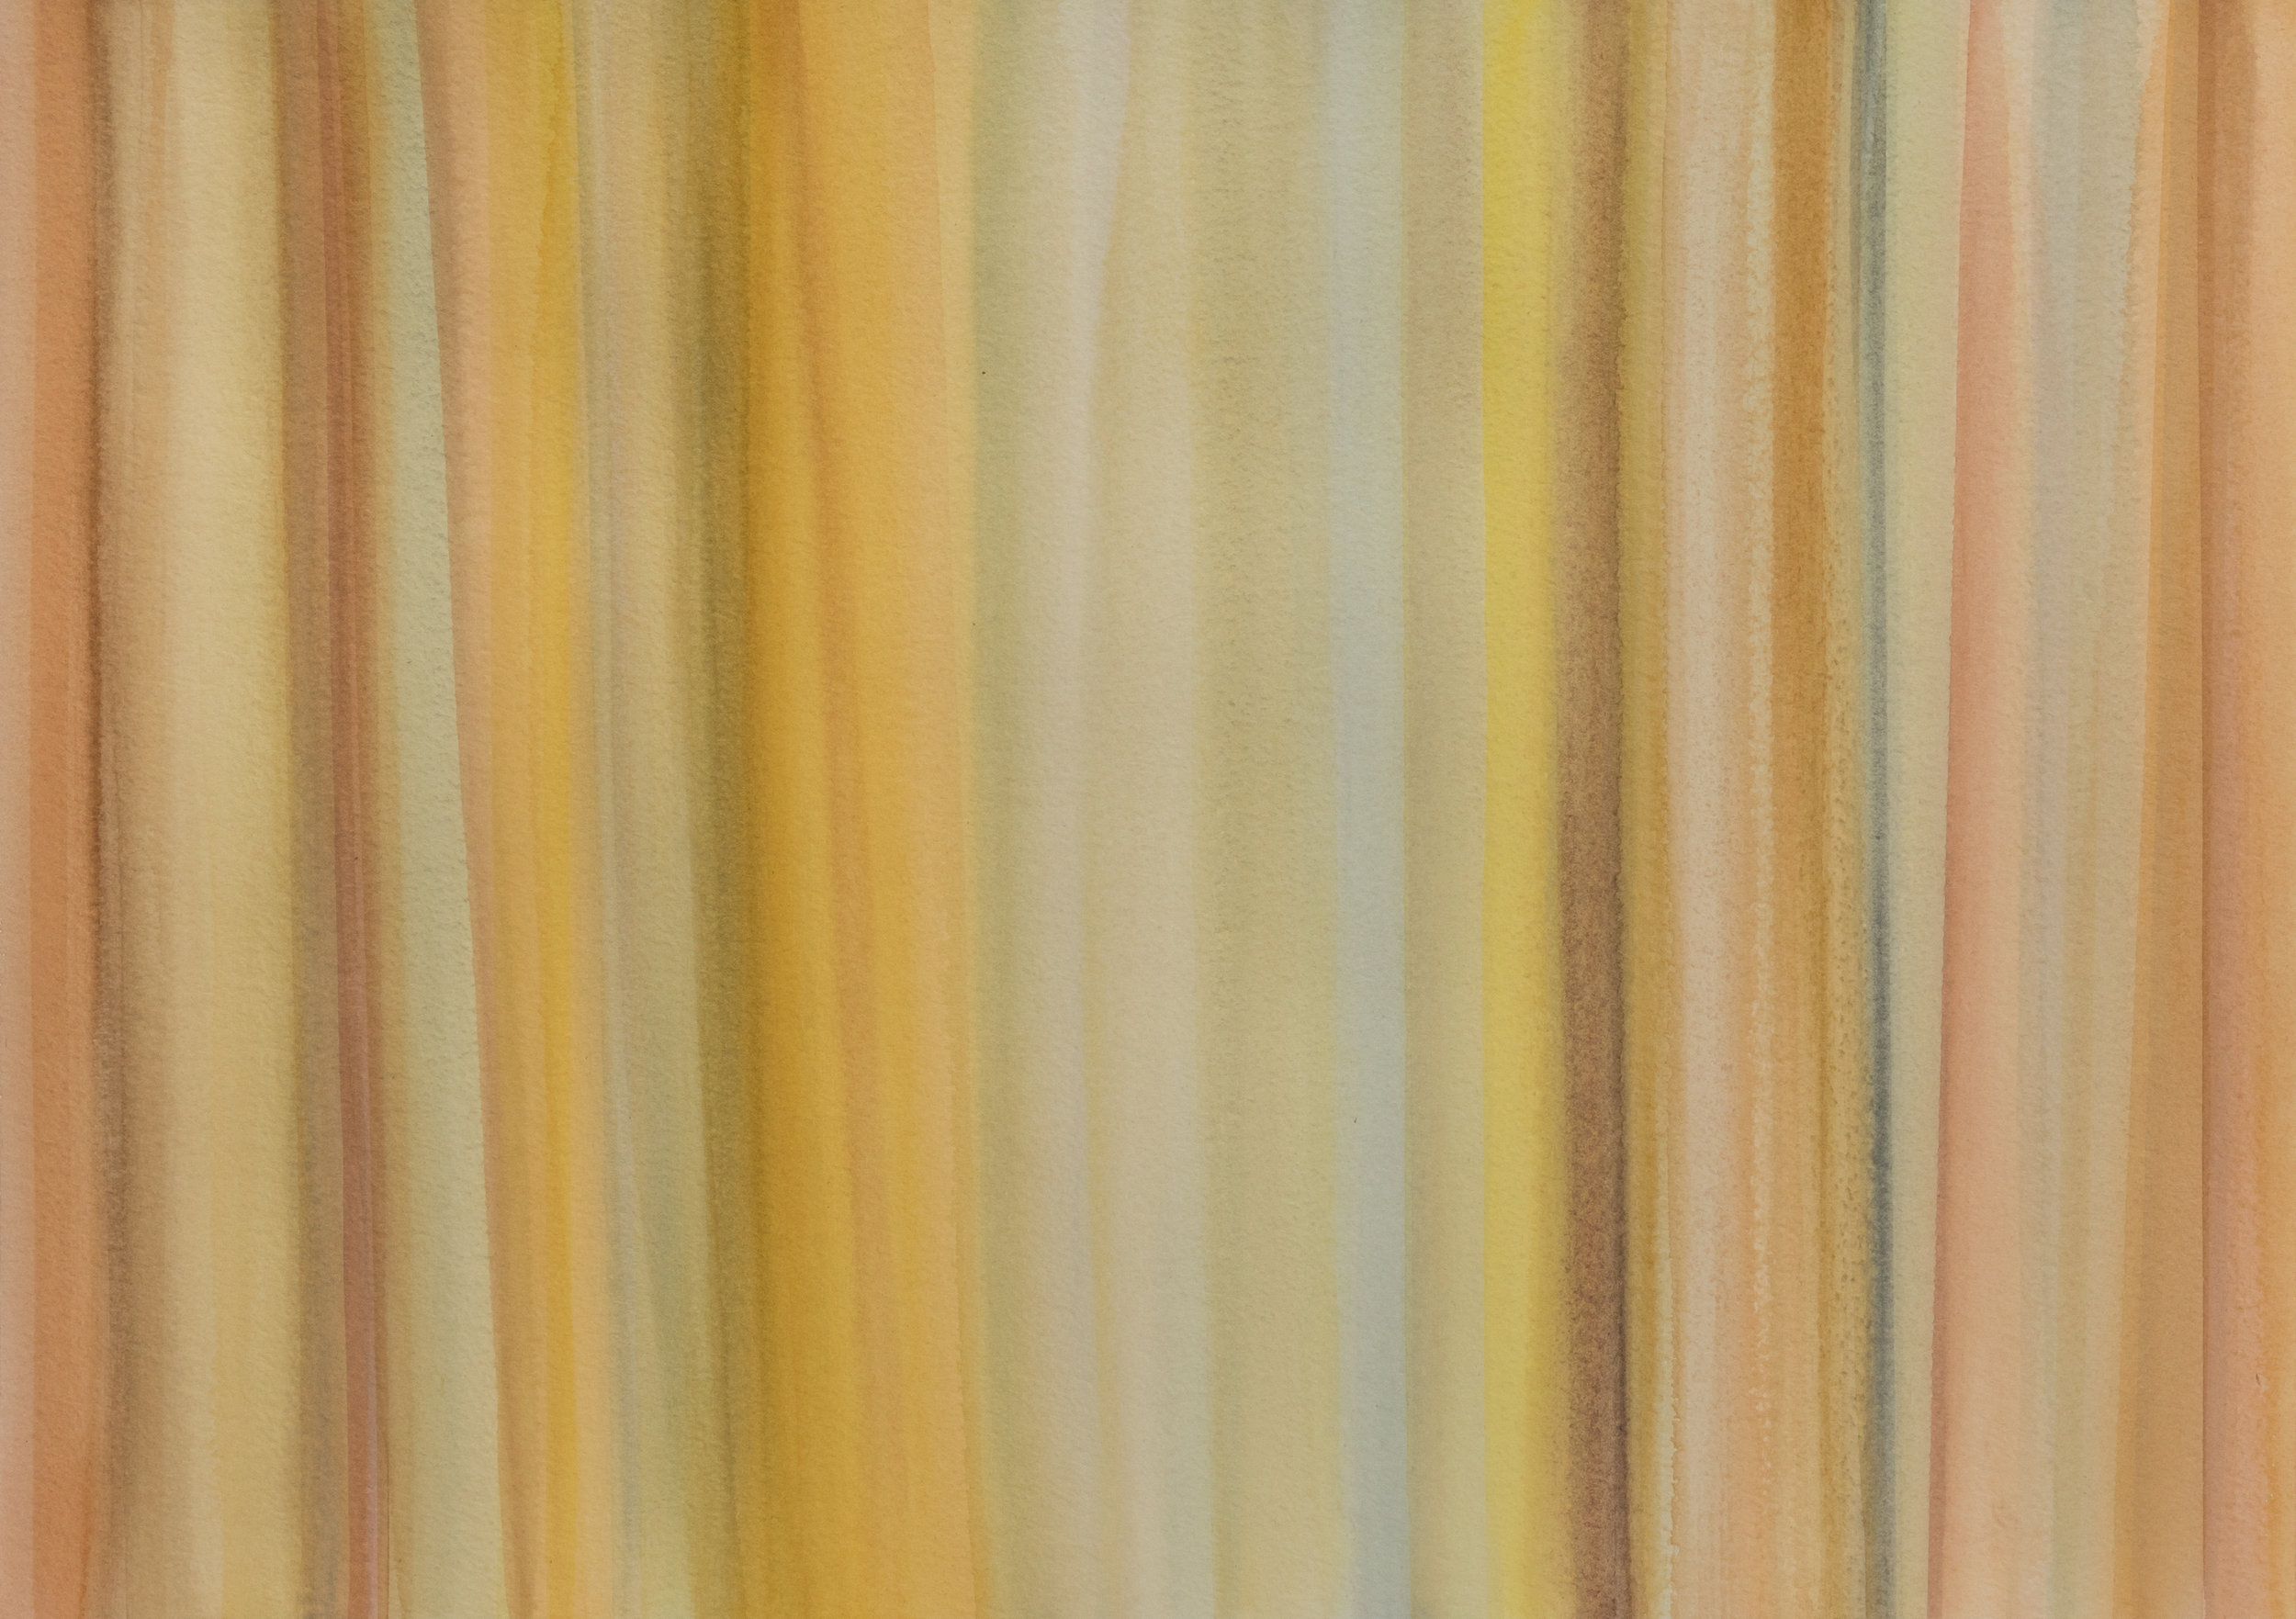 Yellow Lines I, 2017, watercolor on paper, 22 x 30 in, $3,000